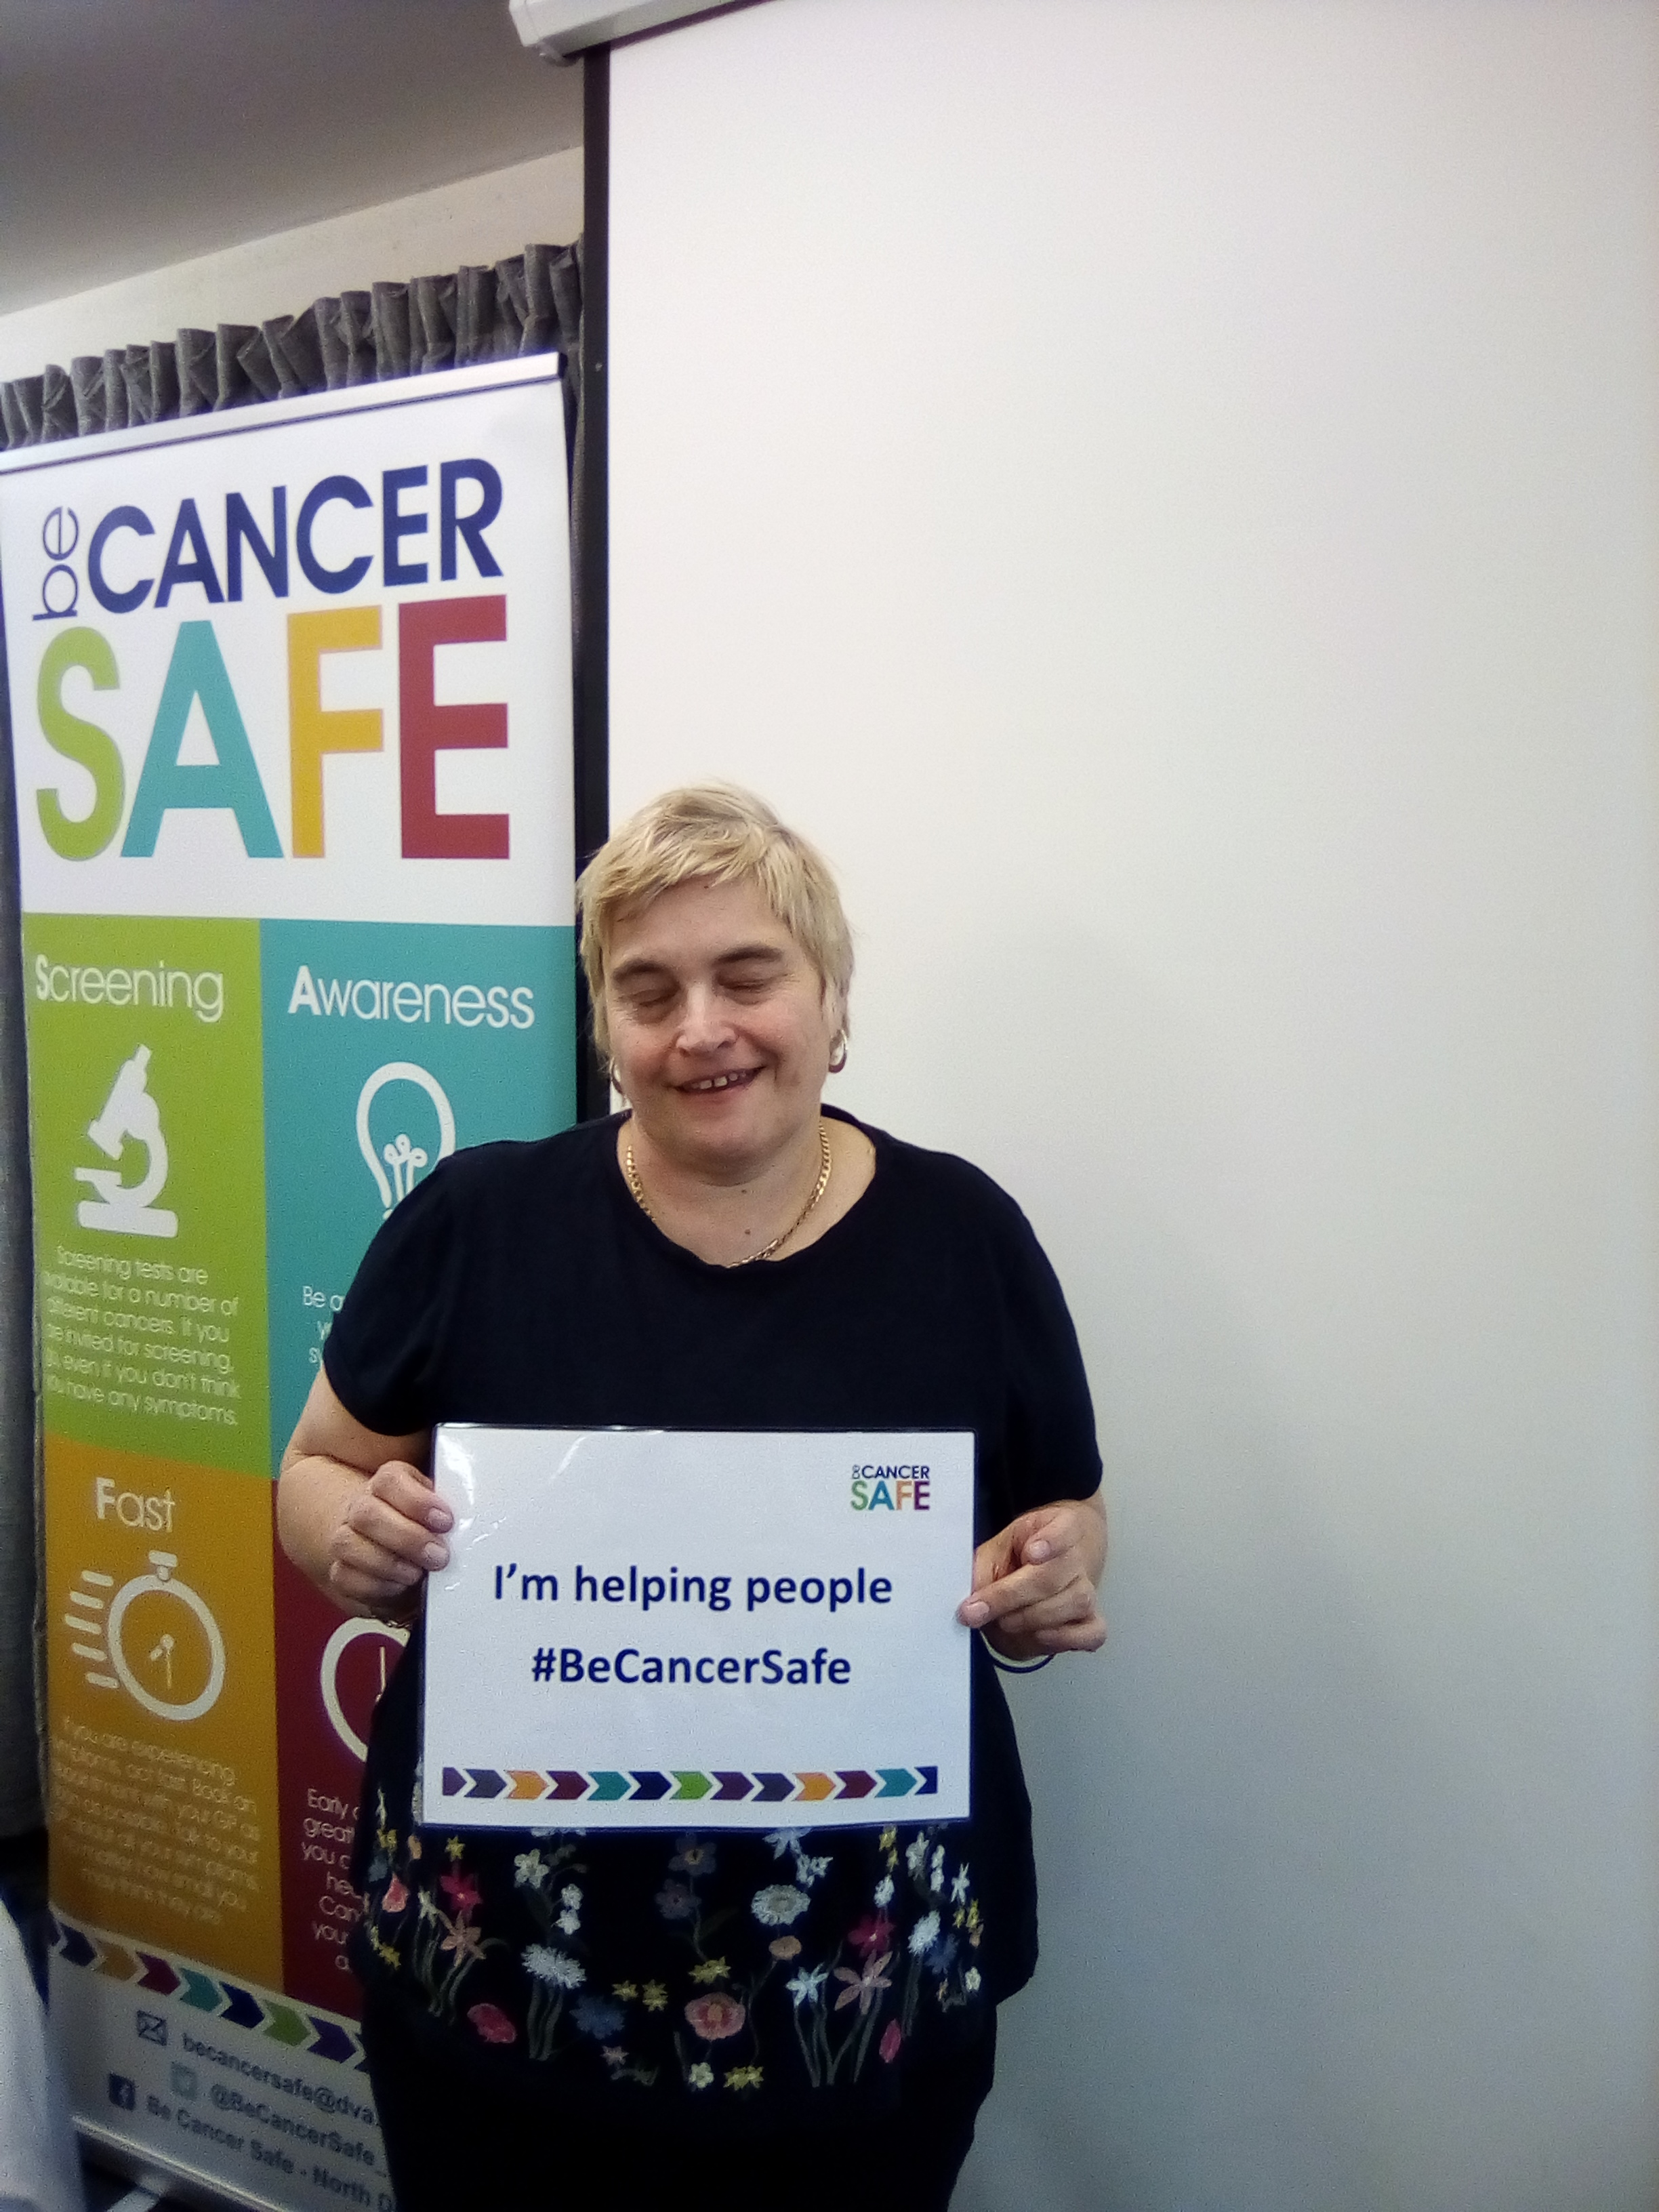 Sue from Derbyshire Borderline Personality Disorder Support Group